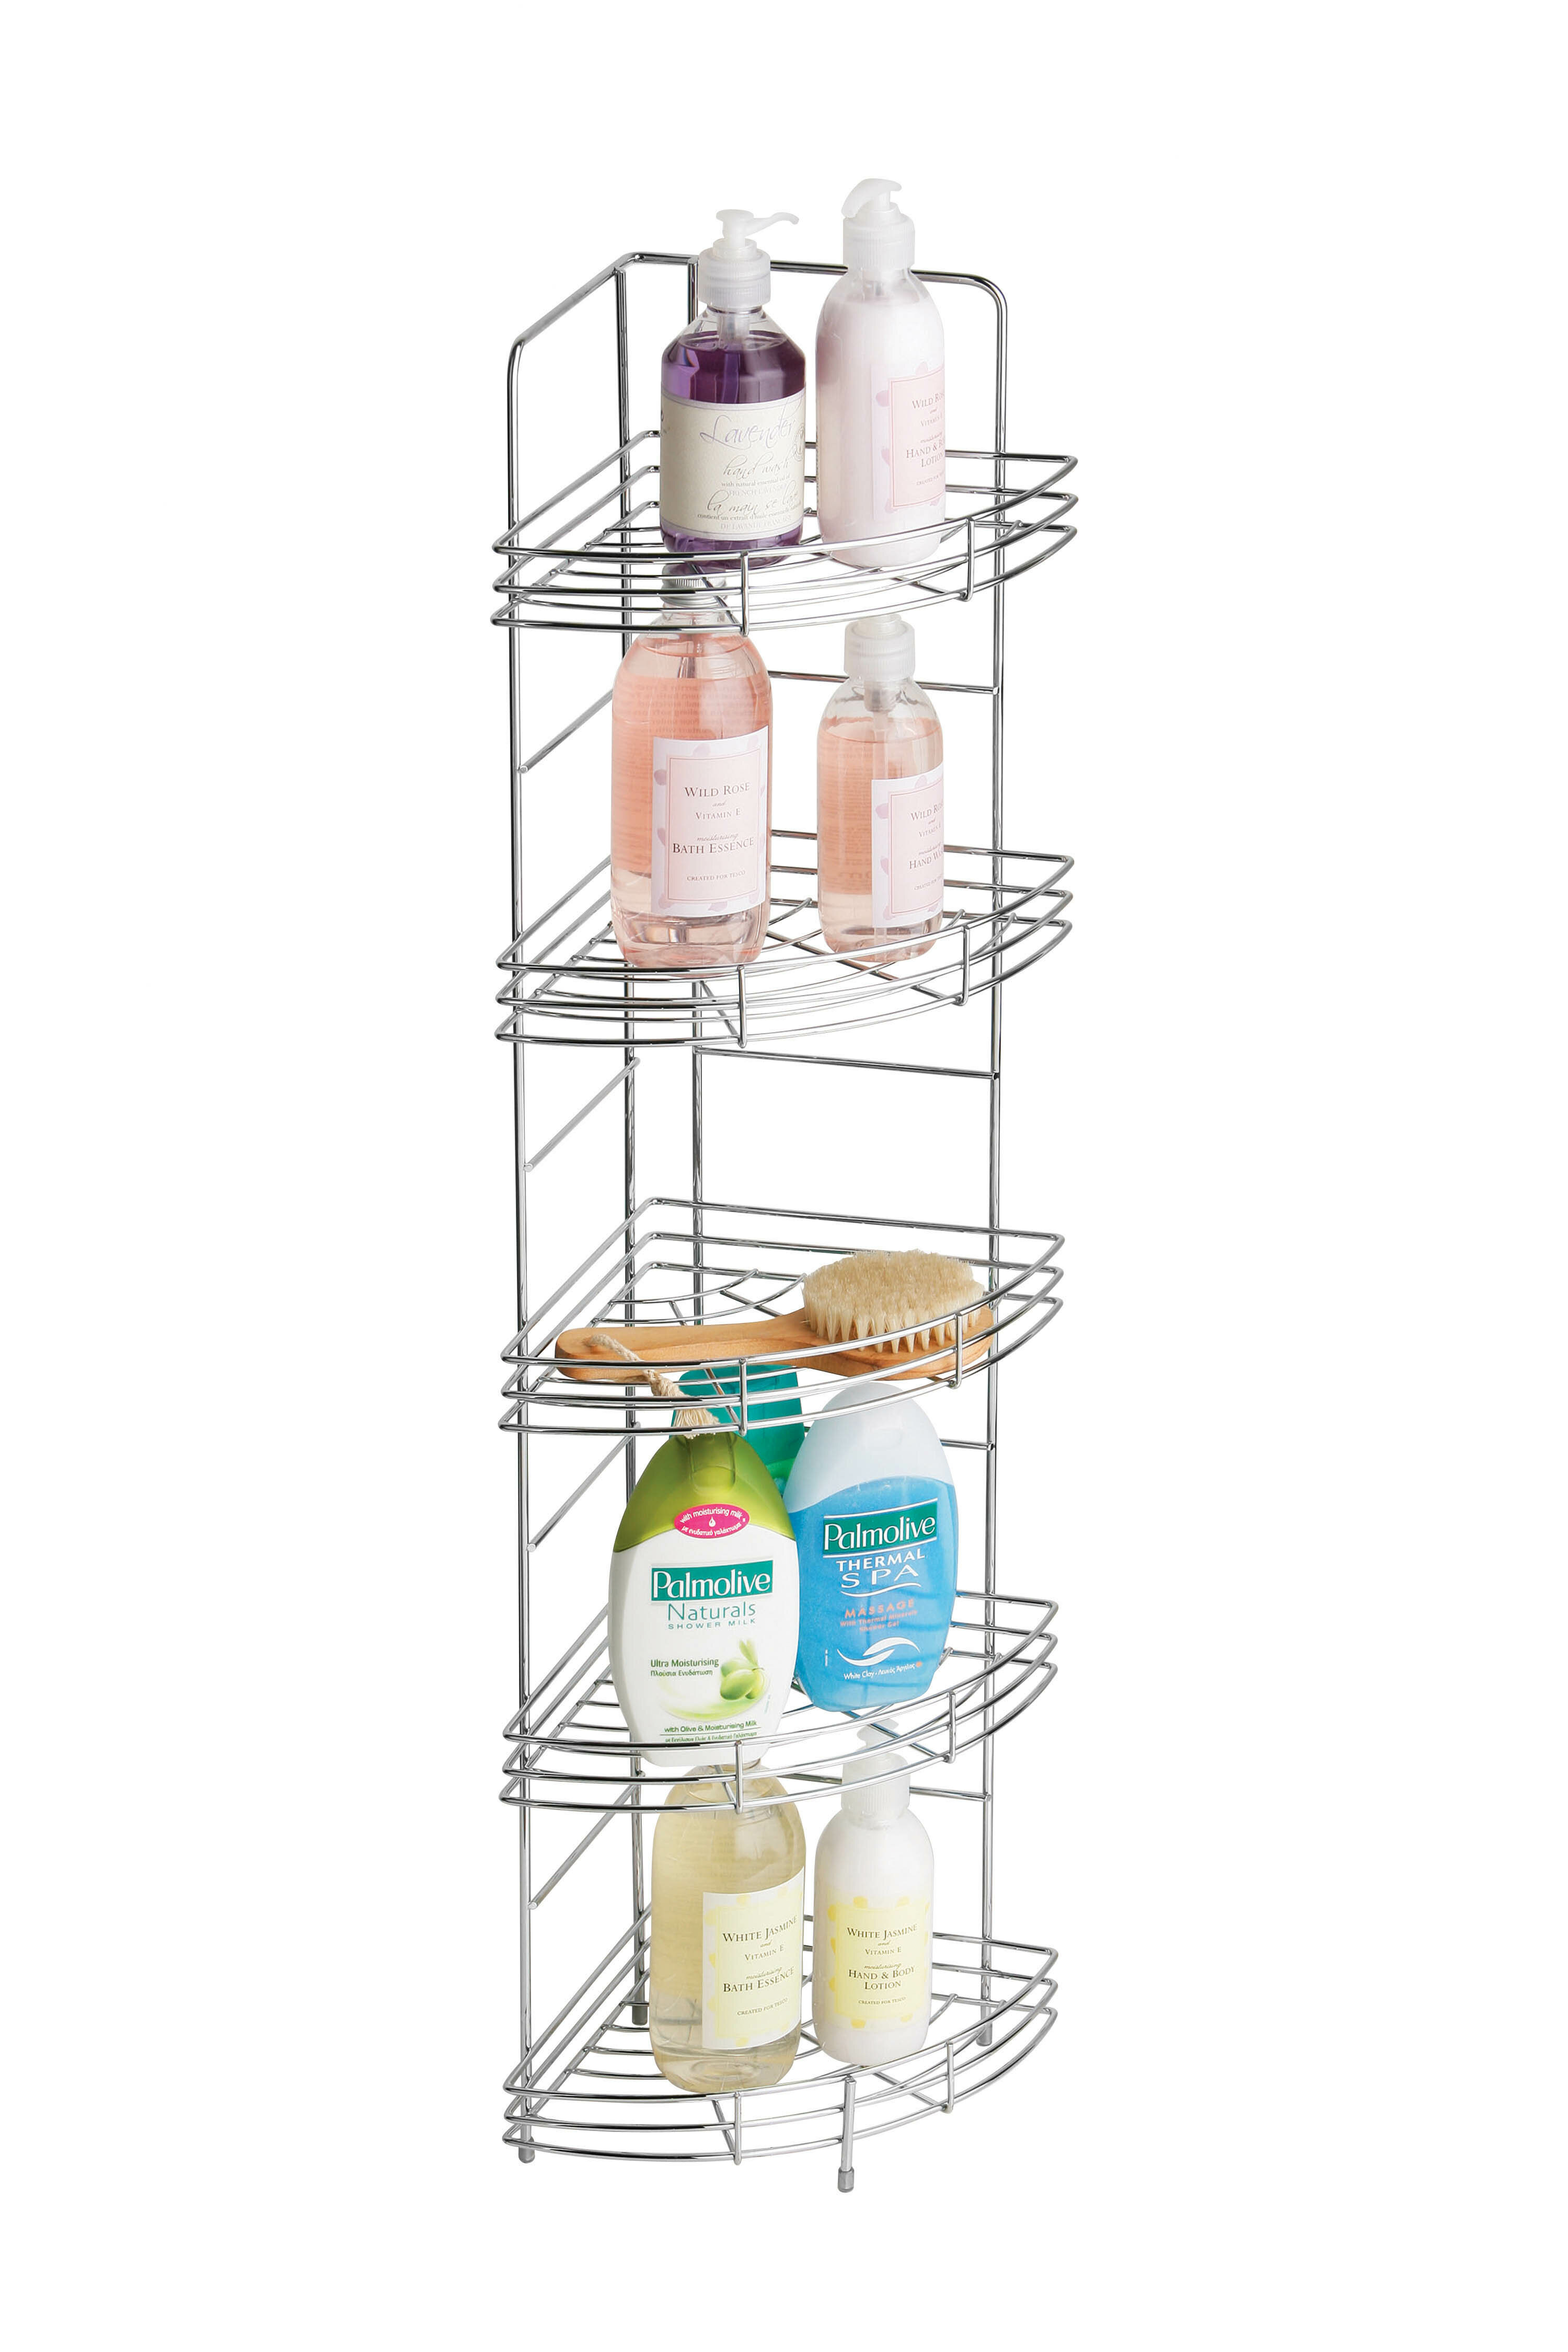 All Home Metal Free Standing Shower Caddy & Reviews | Wayfair.co.uk